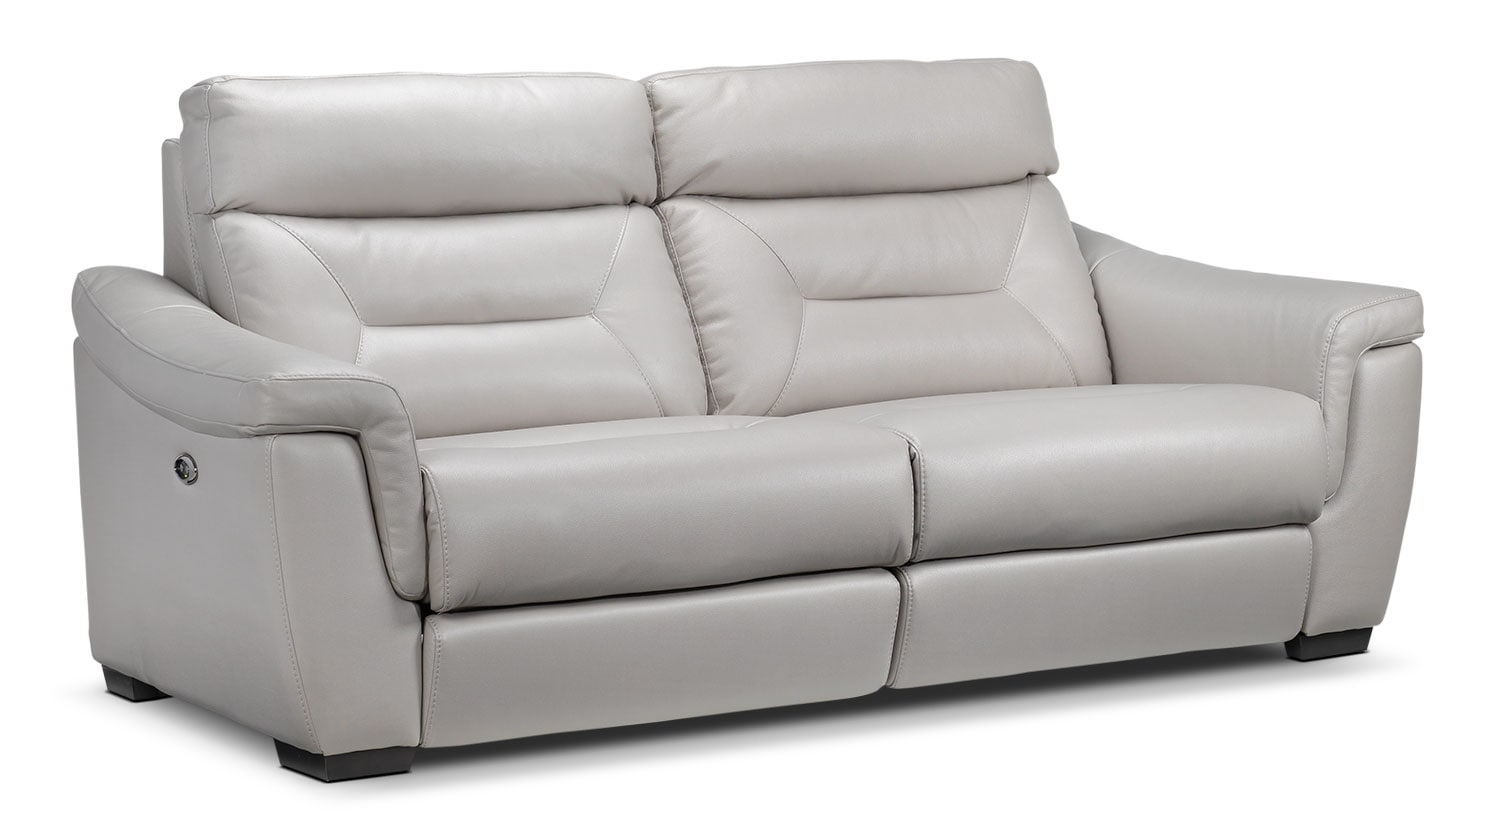 Living Room Furniture - Ralston Power Reclining Sofa - Silver-Grey